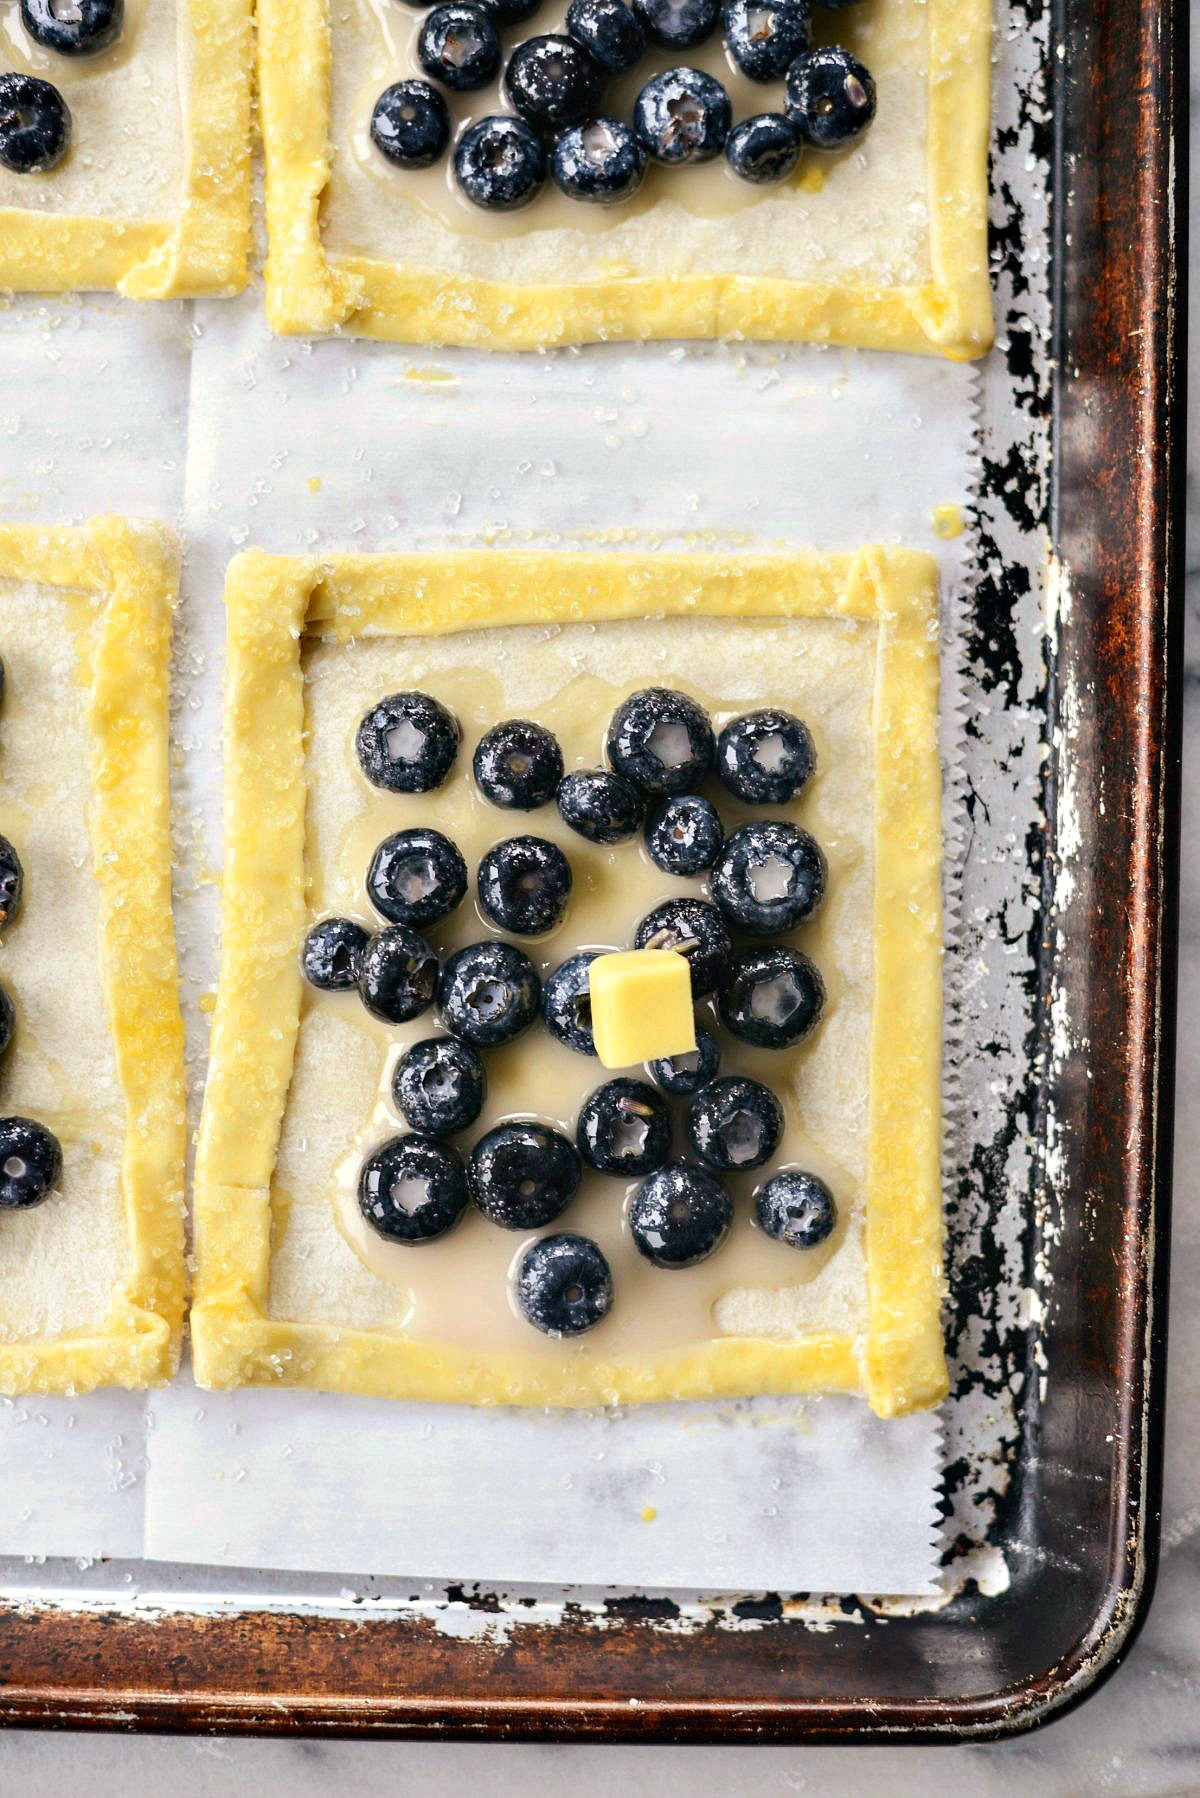 Blueberry Lavender Pastry Pies l SimplyScratch.com #blueberry #lavender #puffpastry #pies #dessert